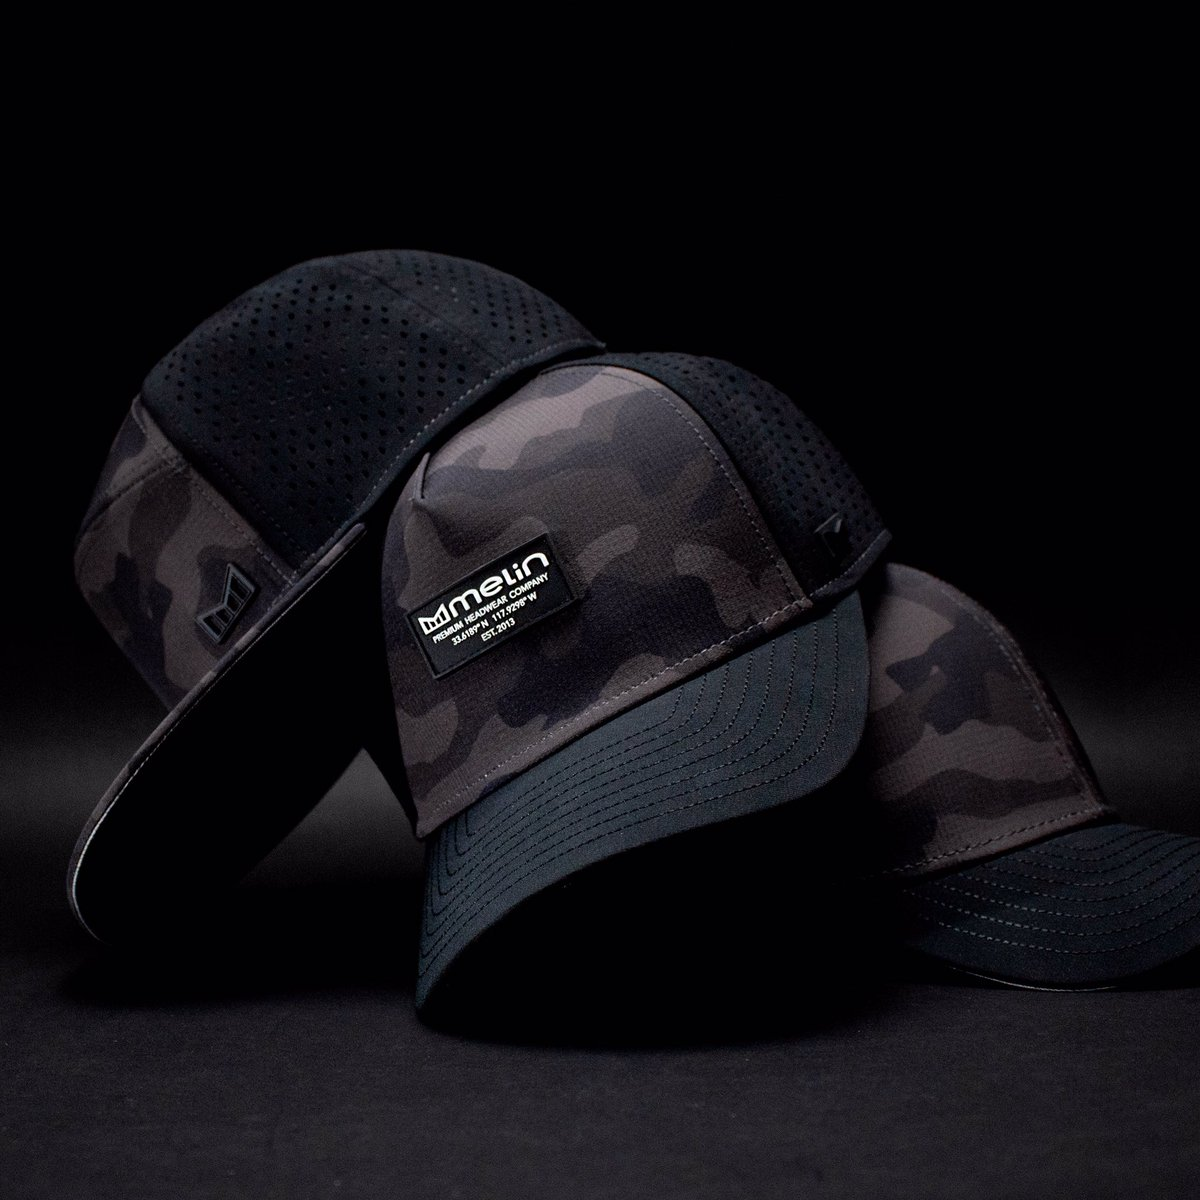 🔥New Drop!🔥 Introducing the Black Camo Pack in HYDRO. Don't miss grabbing one in your favorite style while they're here.